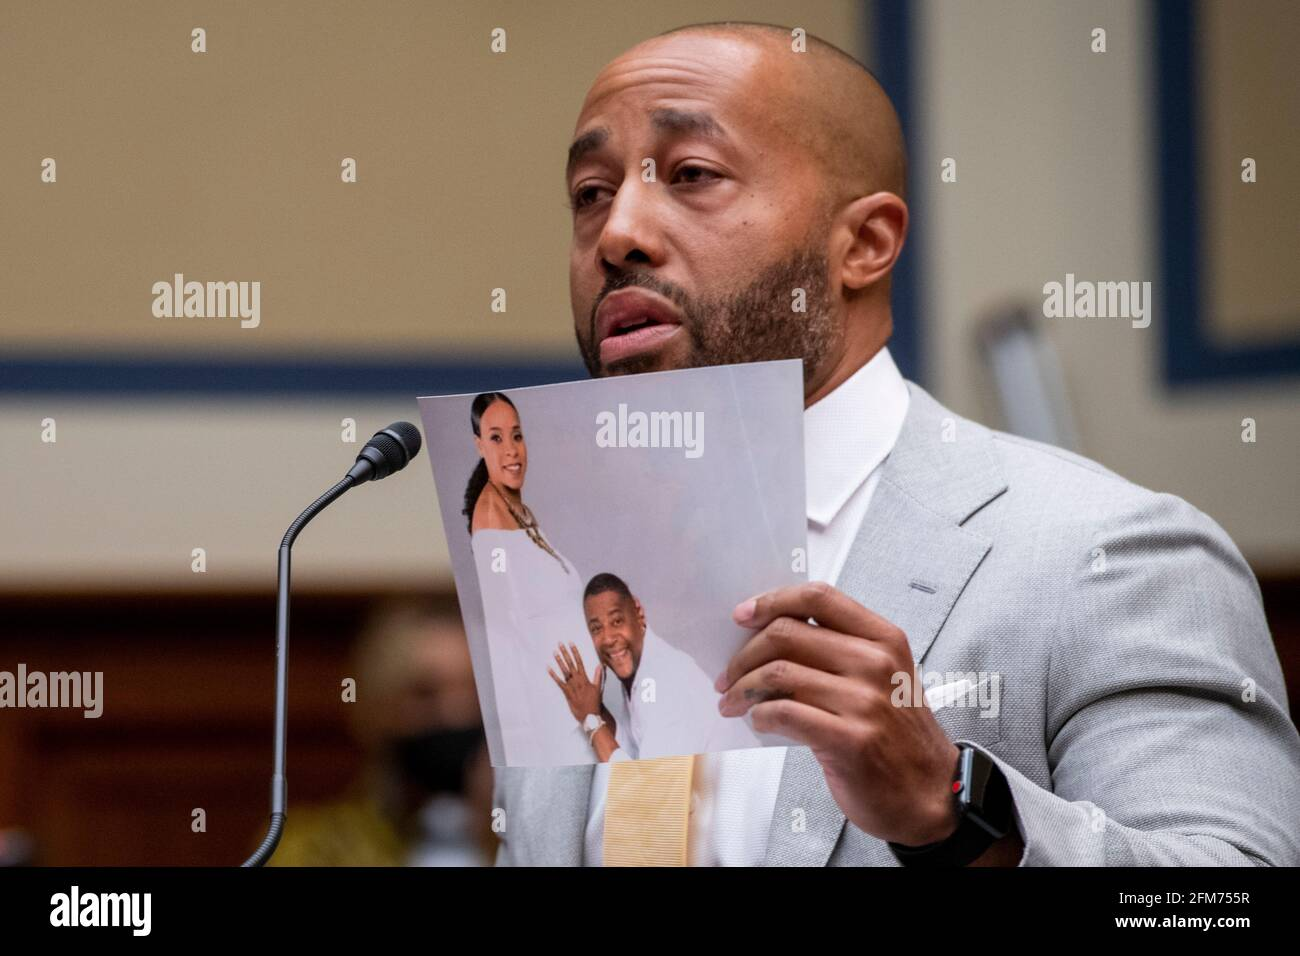 """Washington, United States Of America. 06th May, 2021. Charles Johnson, husband of the late Kira Johnson and Founder of 4Kira4Moms, testifies about losing his wife during a routine c-section, as he appears for a House Committee on Oversight and Reform hearing """"Birthing While Black: Examining Americas Black Maternal Health Crisis"""" in the Rayburn House Office Building in Washington, DC, Thursday, May 6, 2021. Credit: Rod Lamkey/CNP 